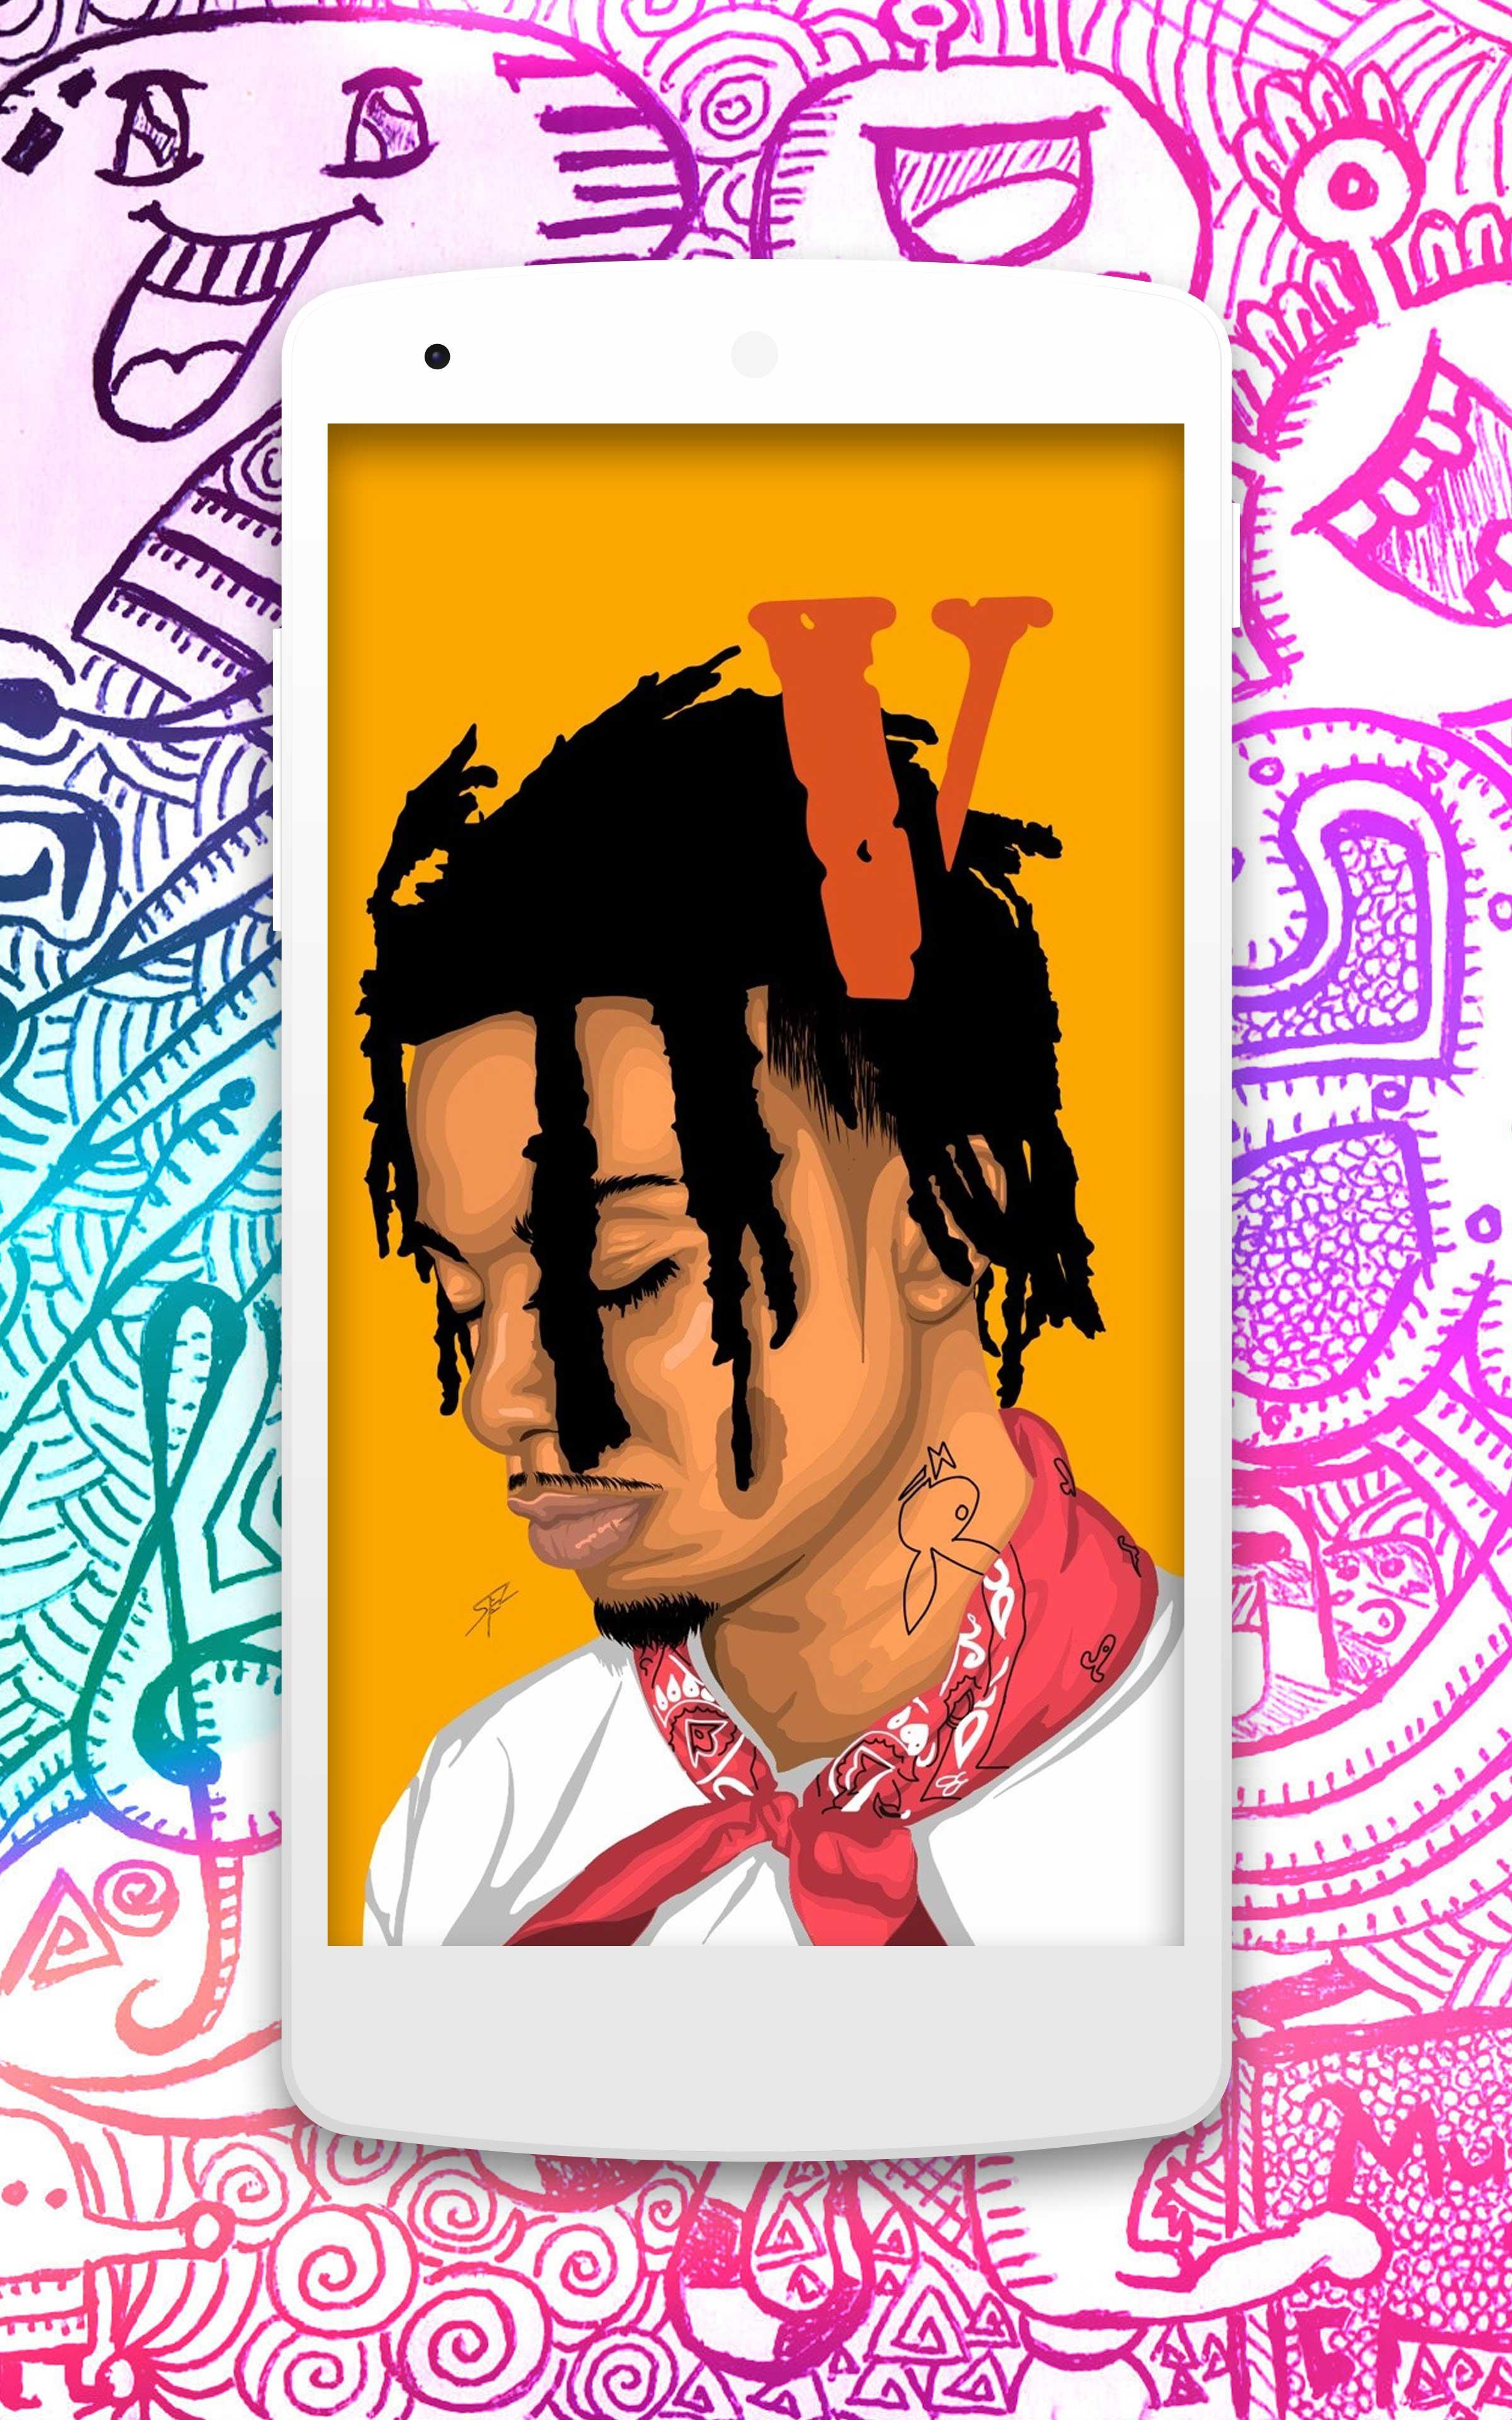 Playboi Carti Wallpaper Android